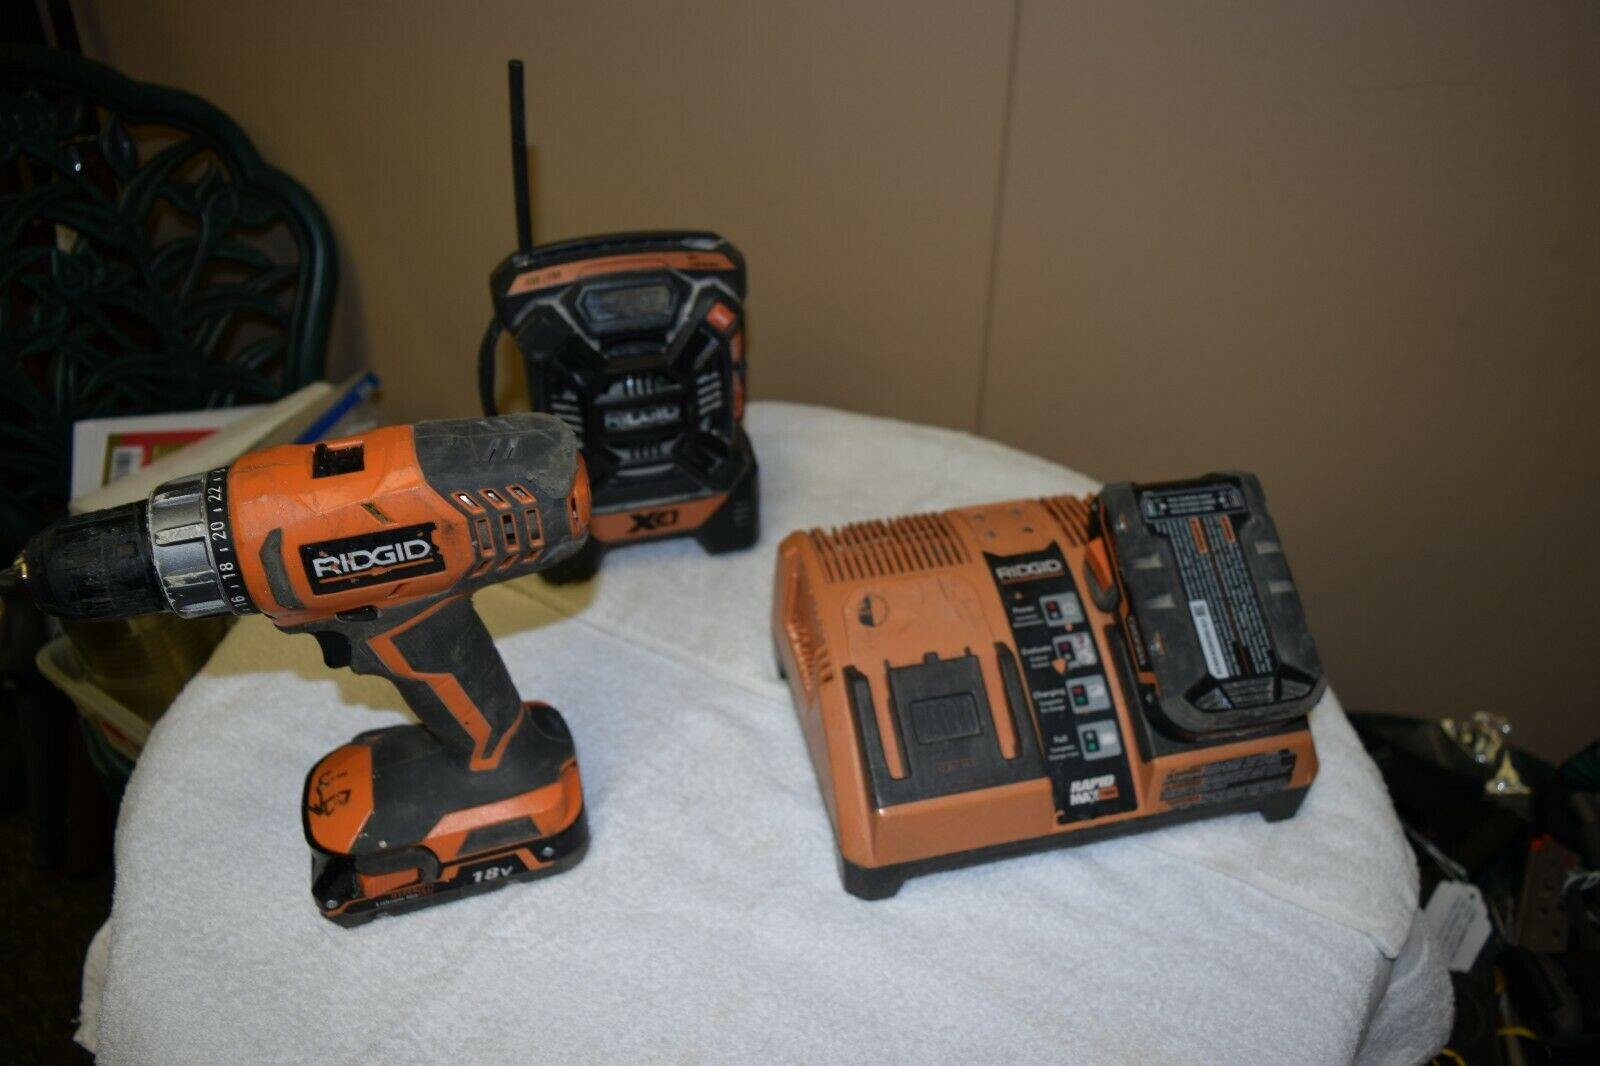 RIDGID Set  1 2  Drill  R860052, Shop Radio R84084 w 2 Batteries and Charger